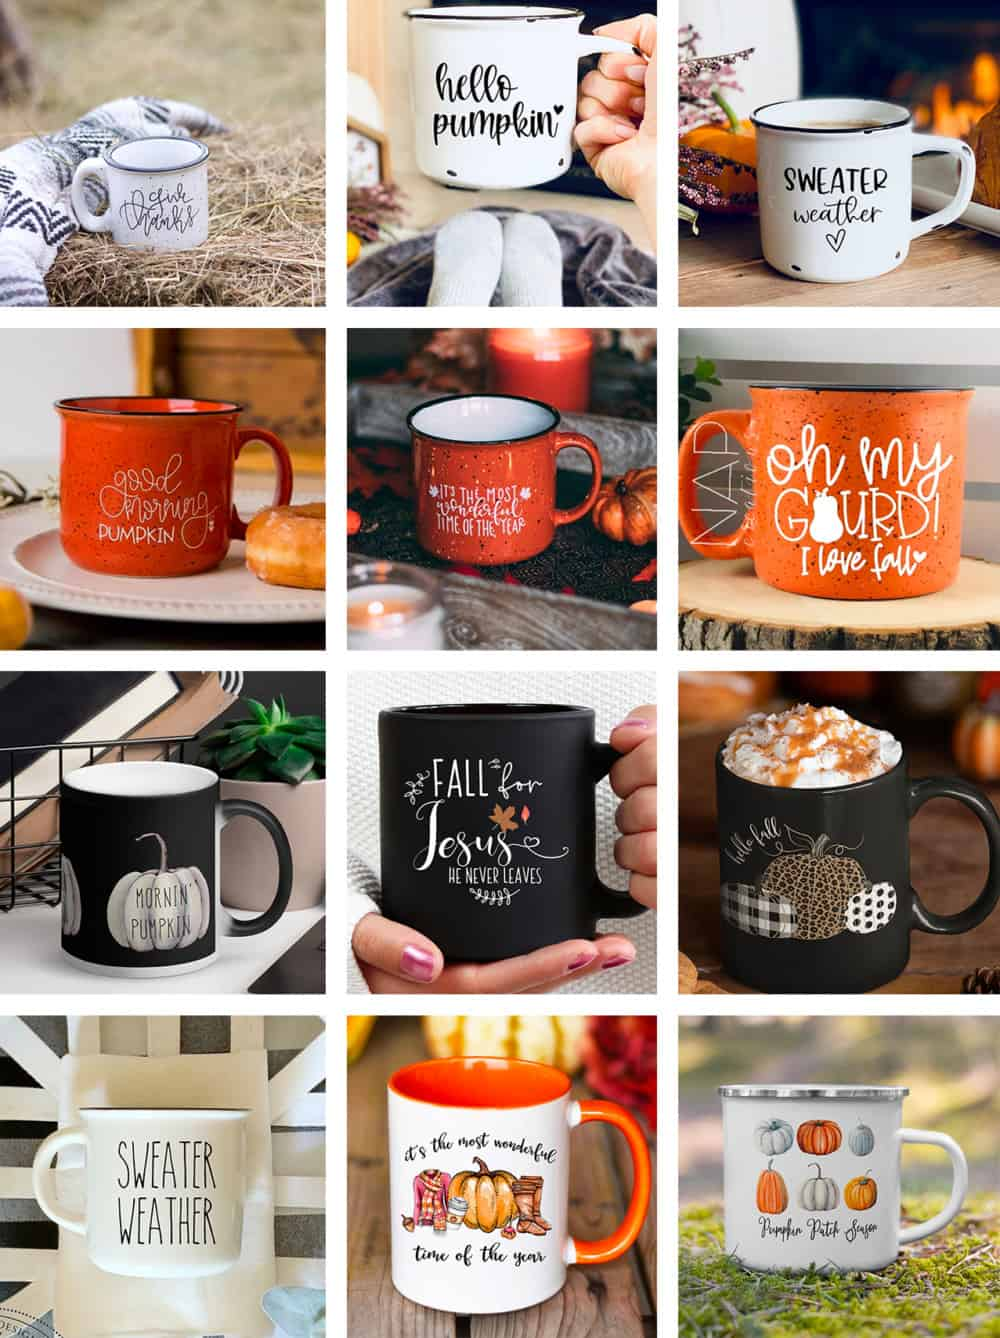 cozy fall mugs from etsy round up